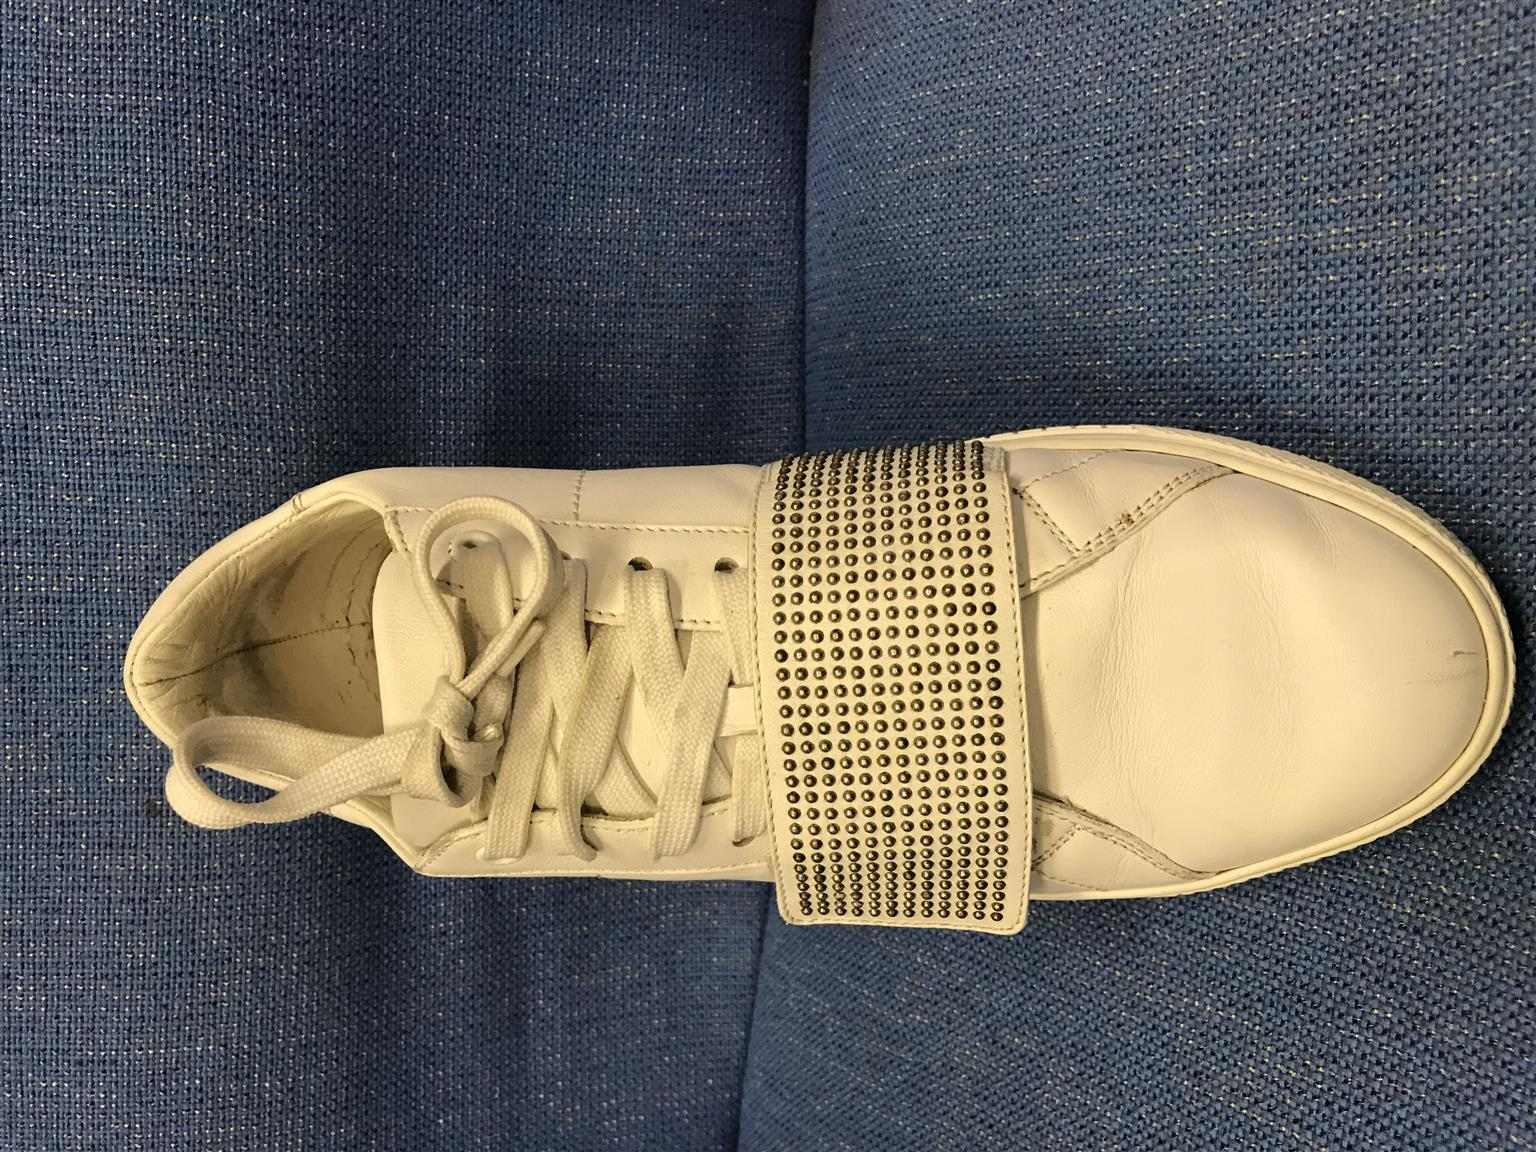 Versace sneakers in great size 7 condition